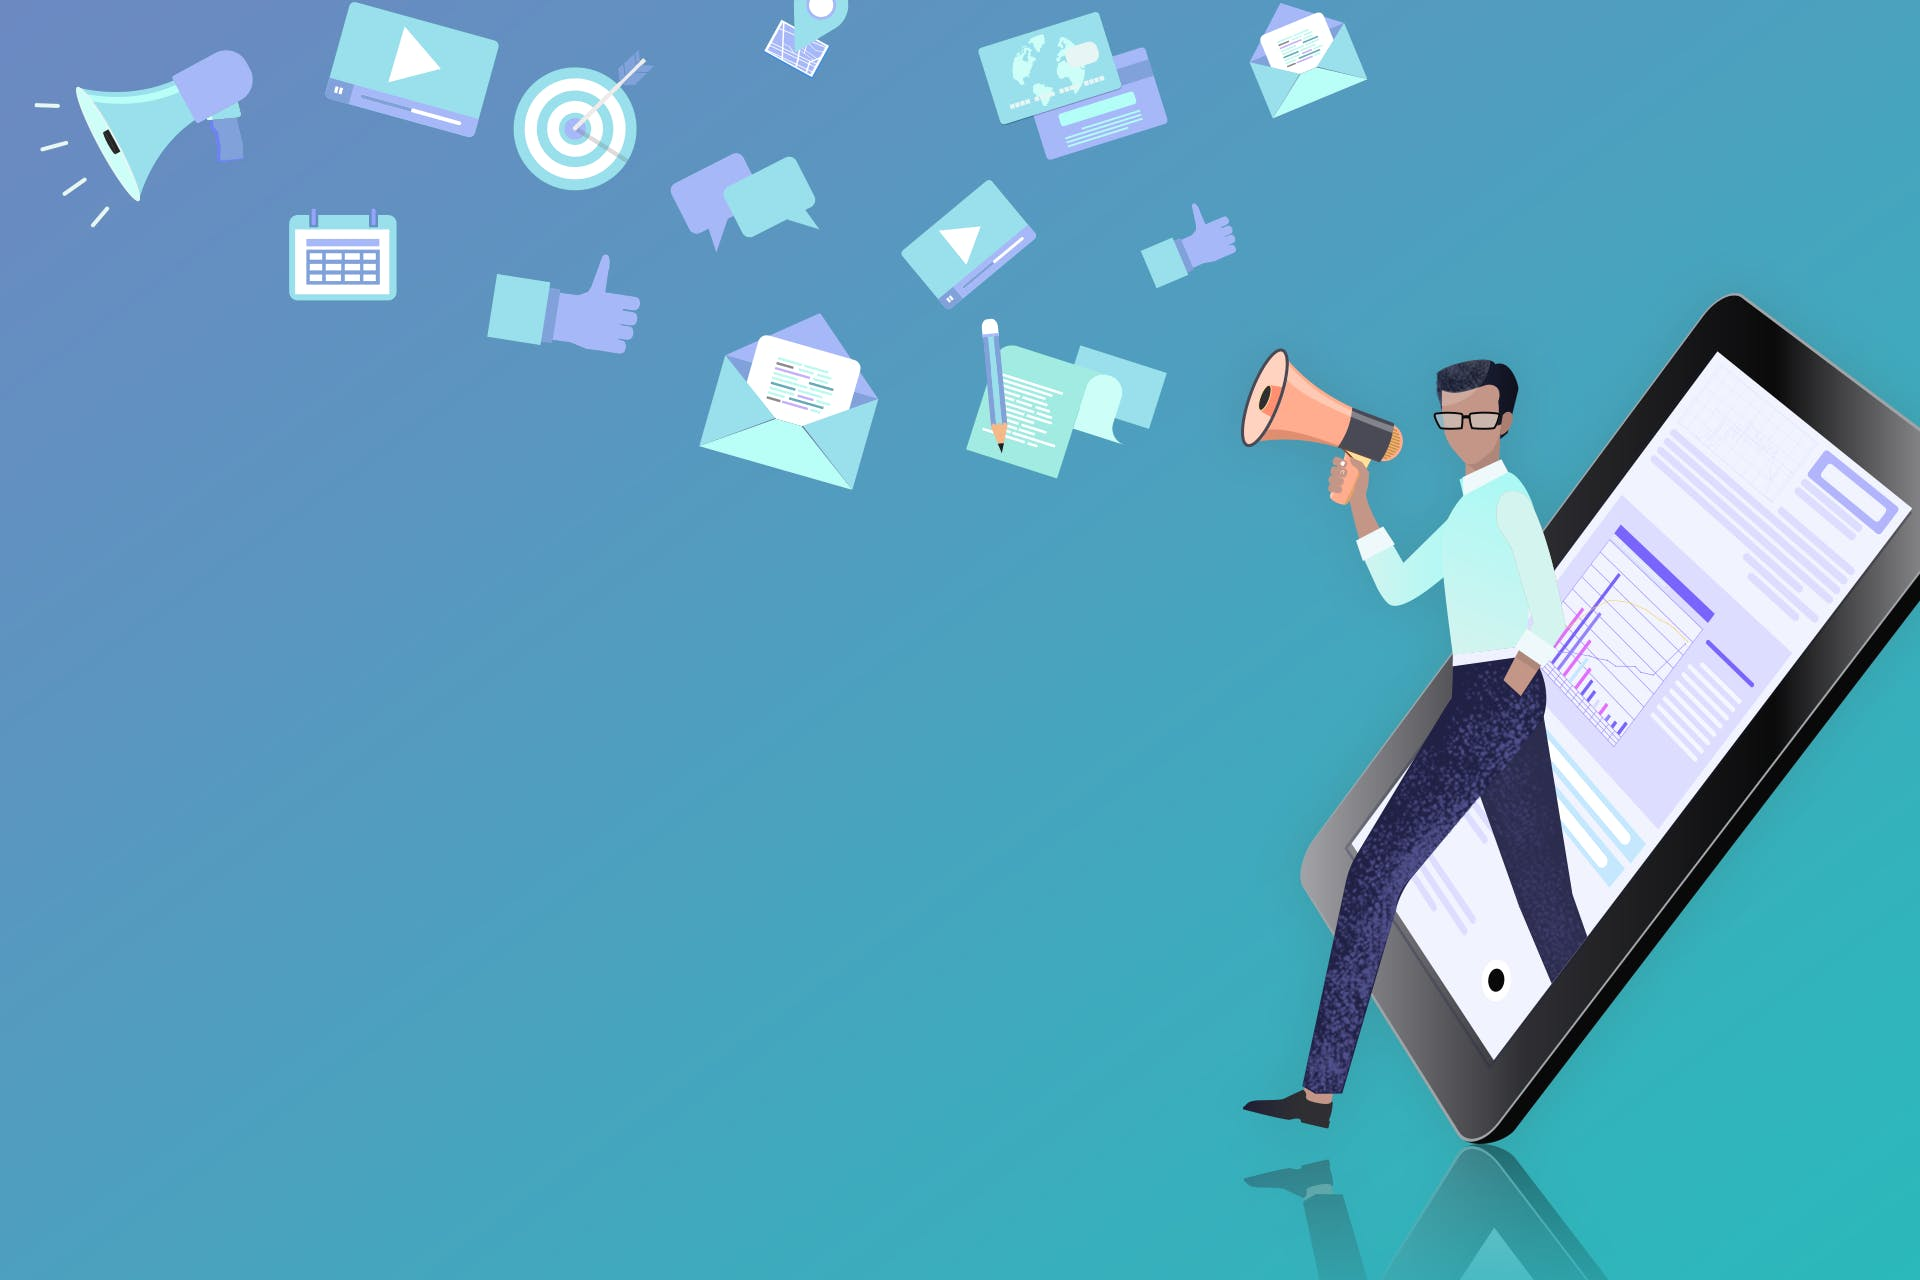 """A cartoon image of a man stepping out of an iPad holding a megaphone. Different icons, like an email, calendar and Facebook """"Like"""" button, hover above his head. The icons represent all of the different forms of content marketing, such as email marketing, social media marketing, etc."""